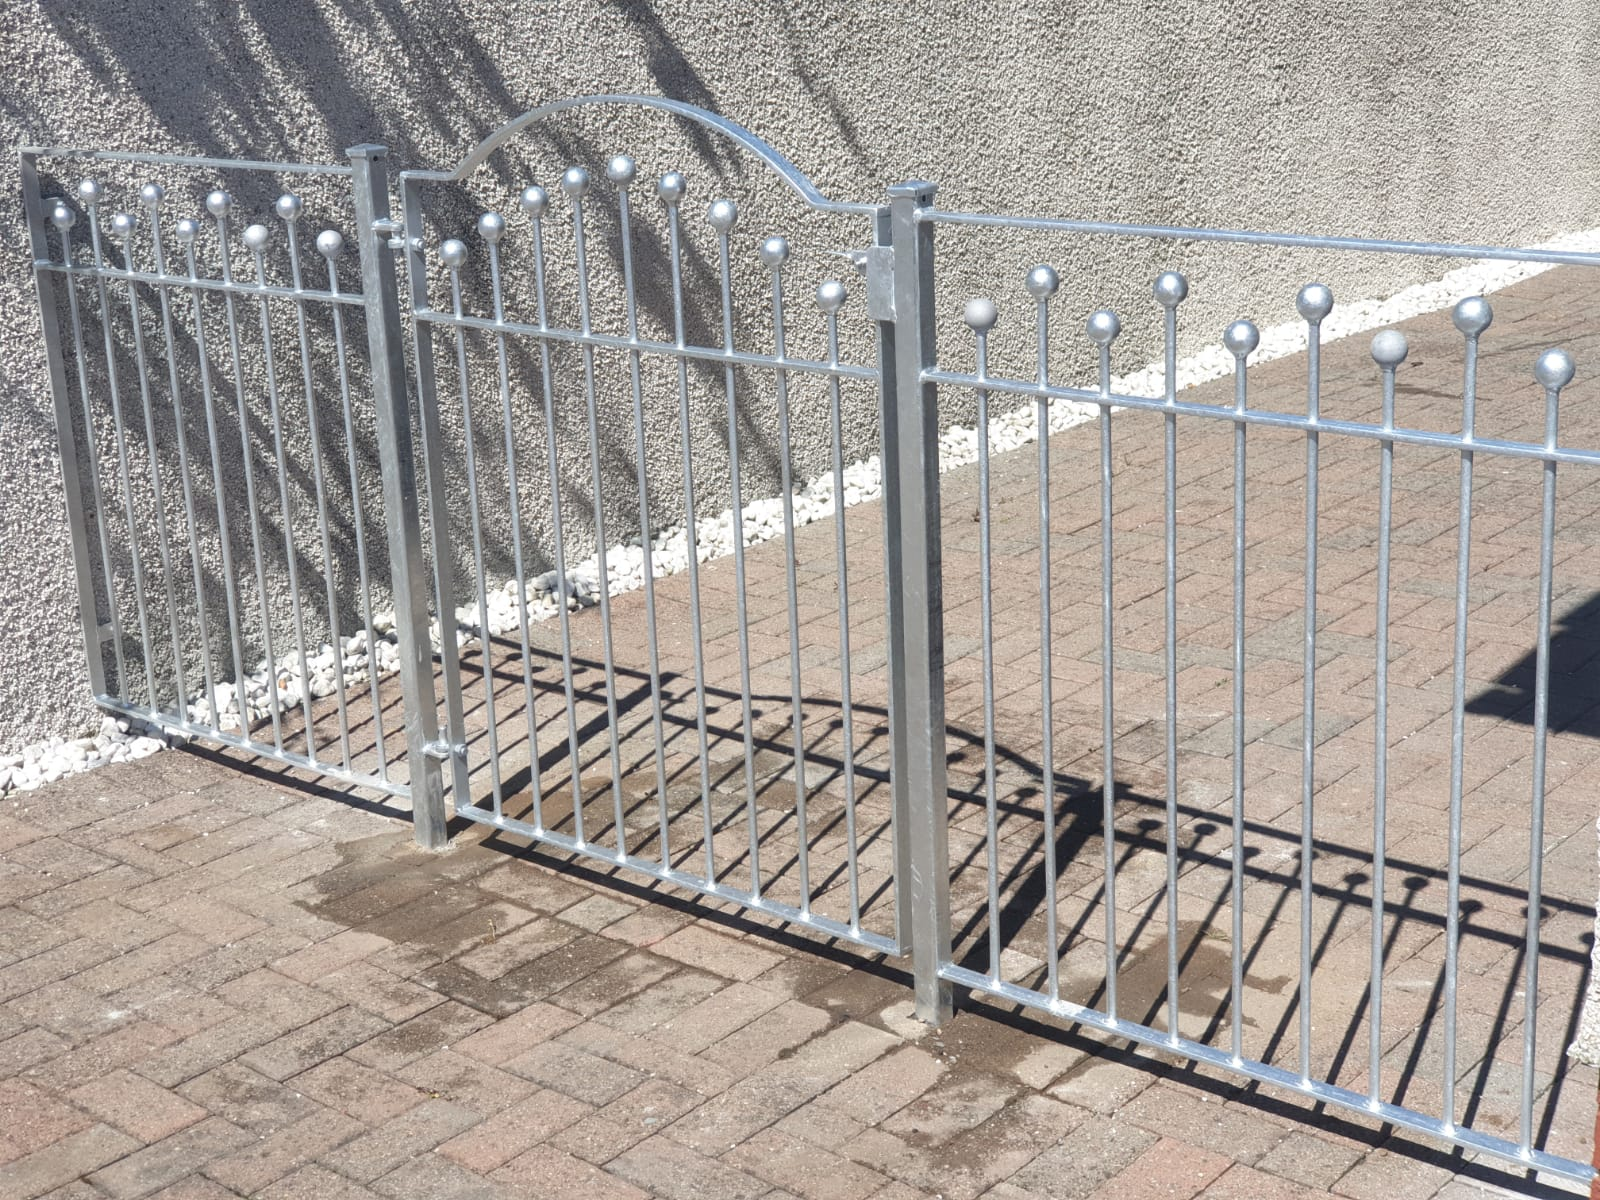 Low maintenance galvanized metal gate and fence by Dain Art Iron in Ayrshire, Scotland